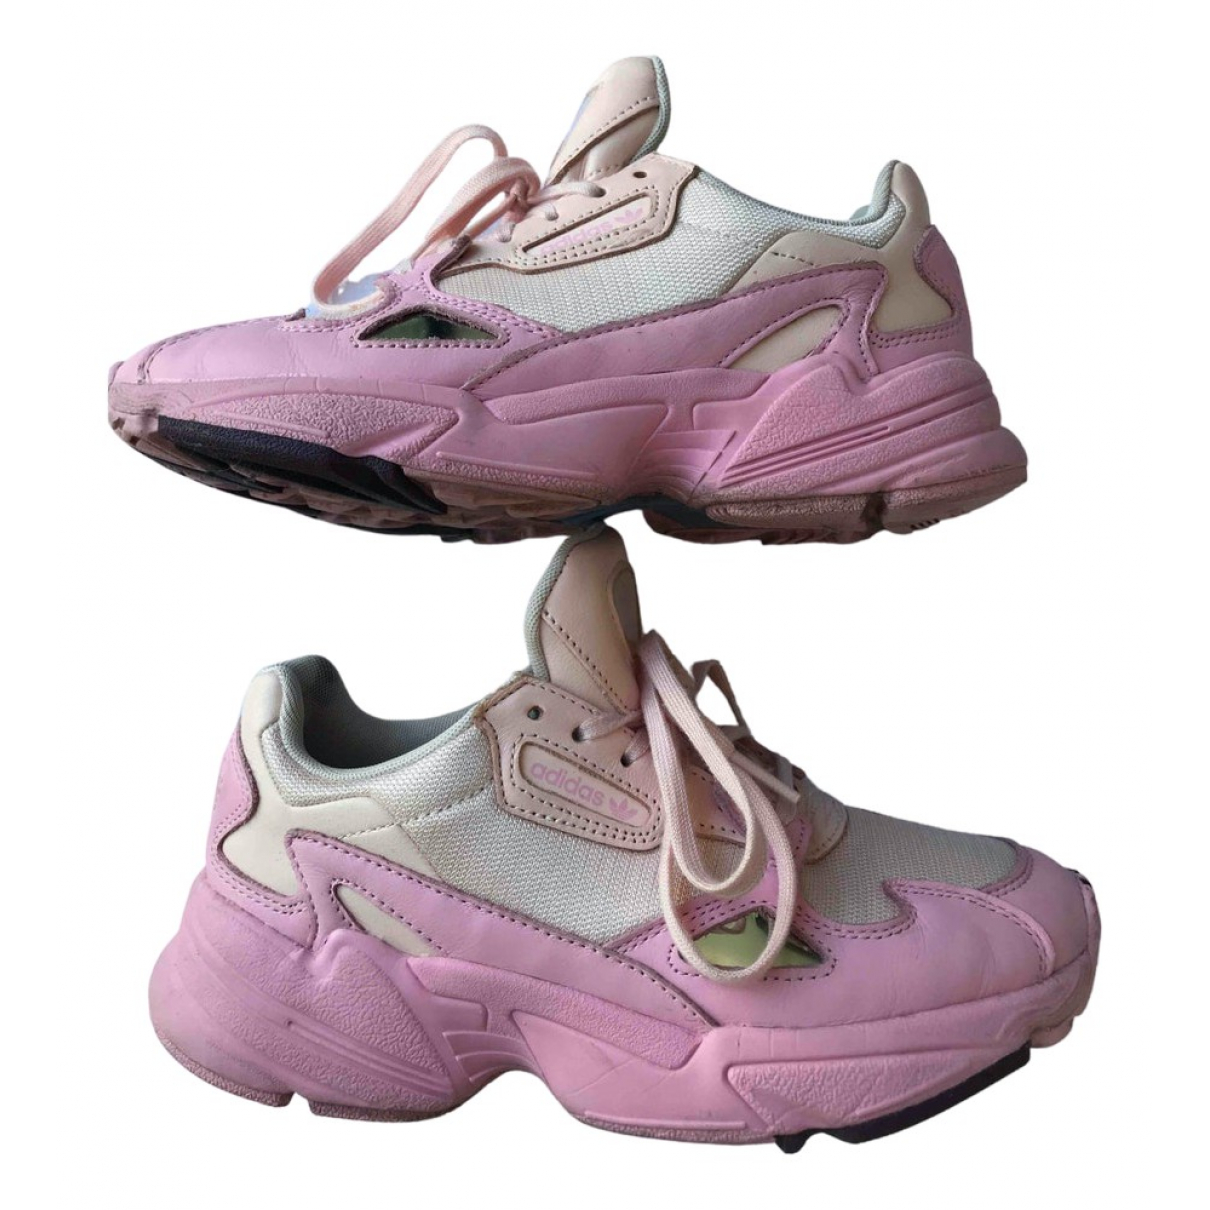 Adidas Falcon Pink Cloth Trainers for Women 4.5 UK